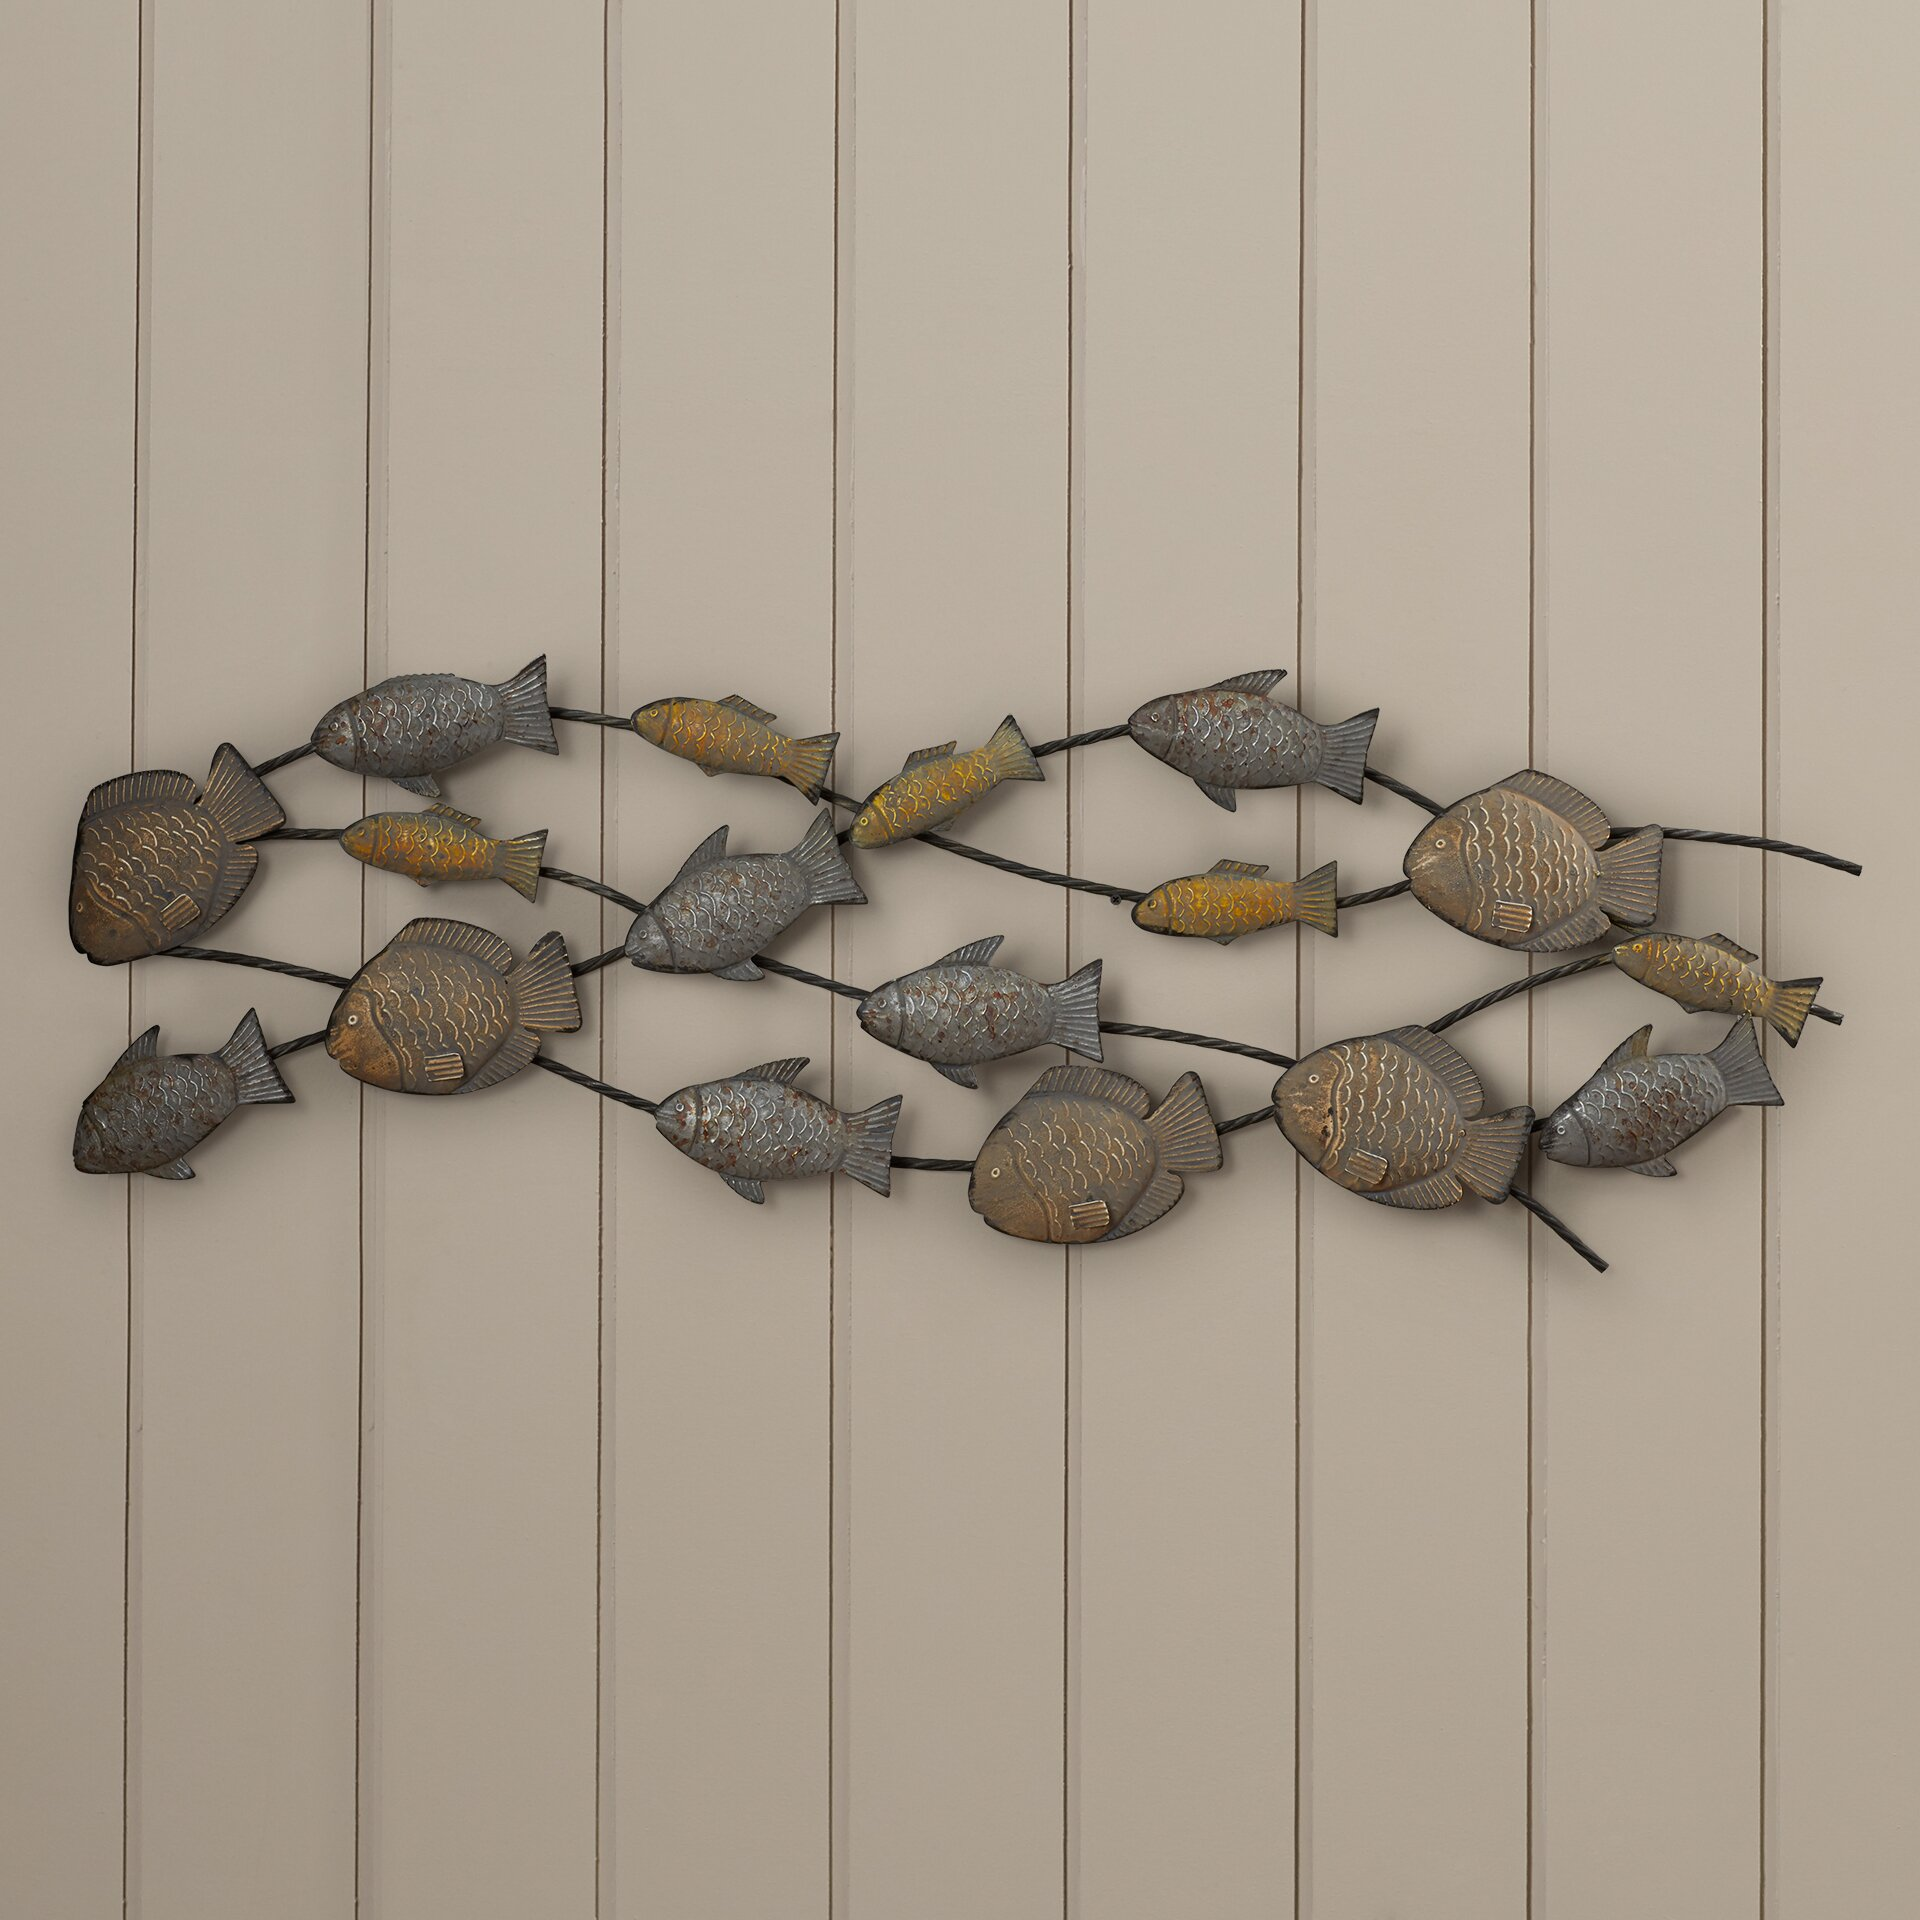 Wall Decor With Fish : Bay isle home fish wall d?cor reviews wayfair